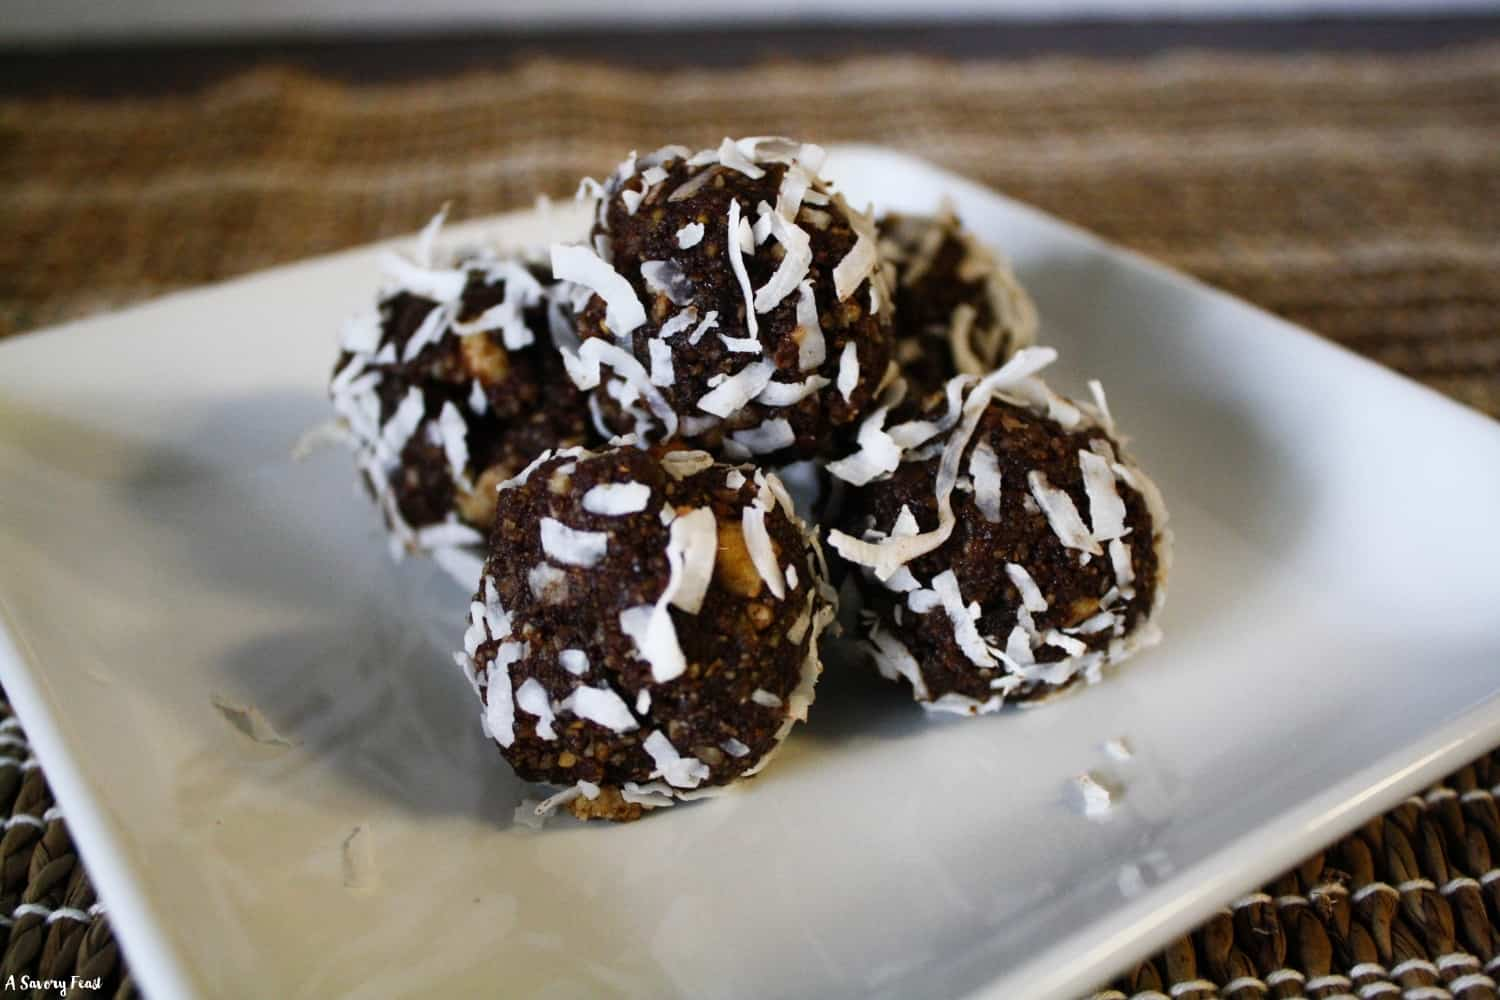 Healthy snack recipe for Chocolate Date Energy Bites